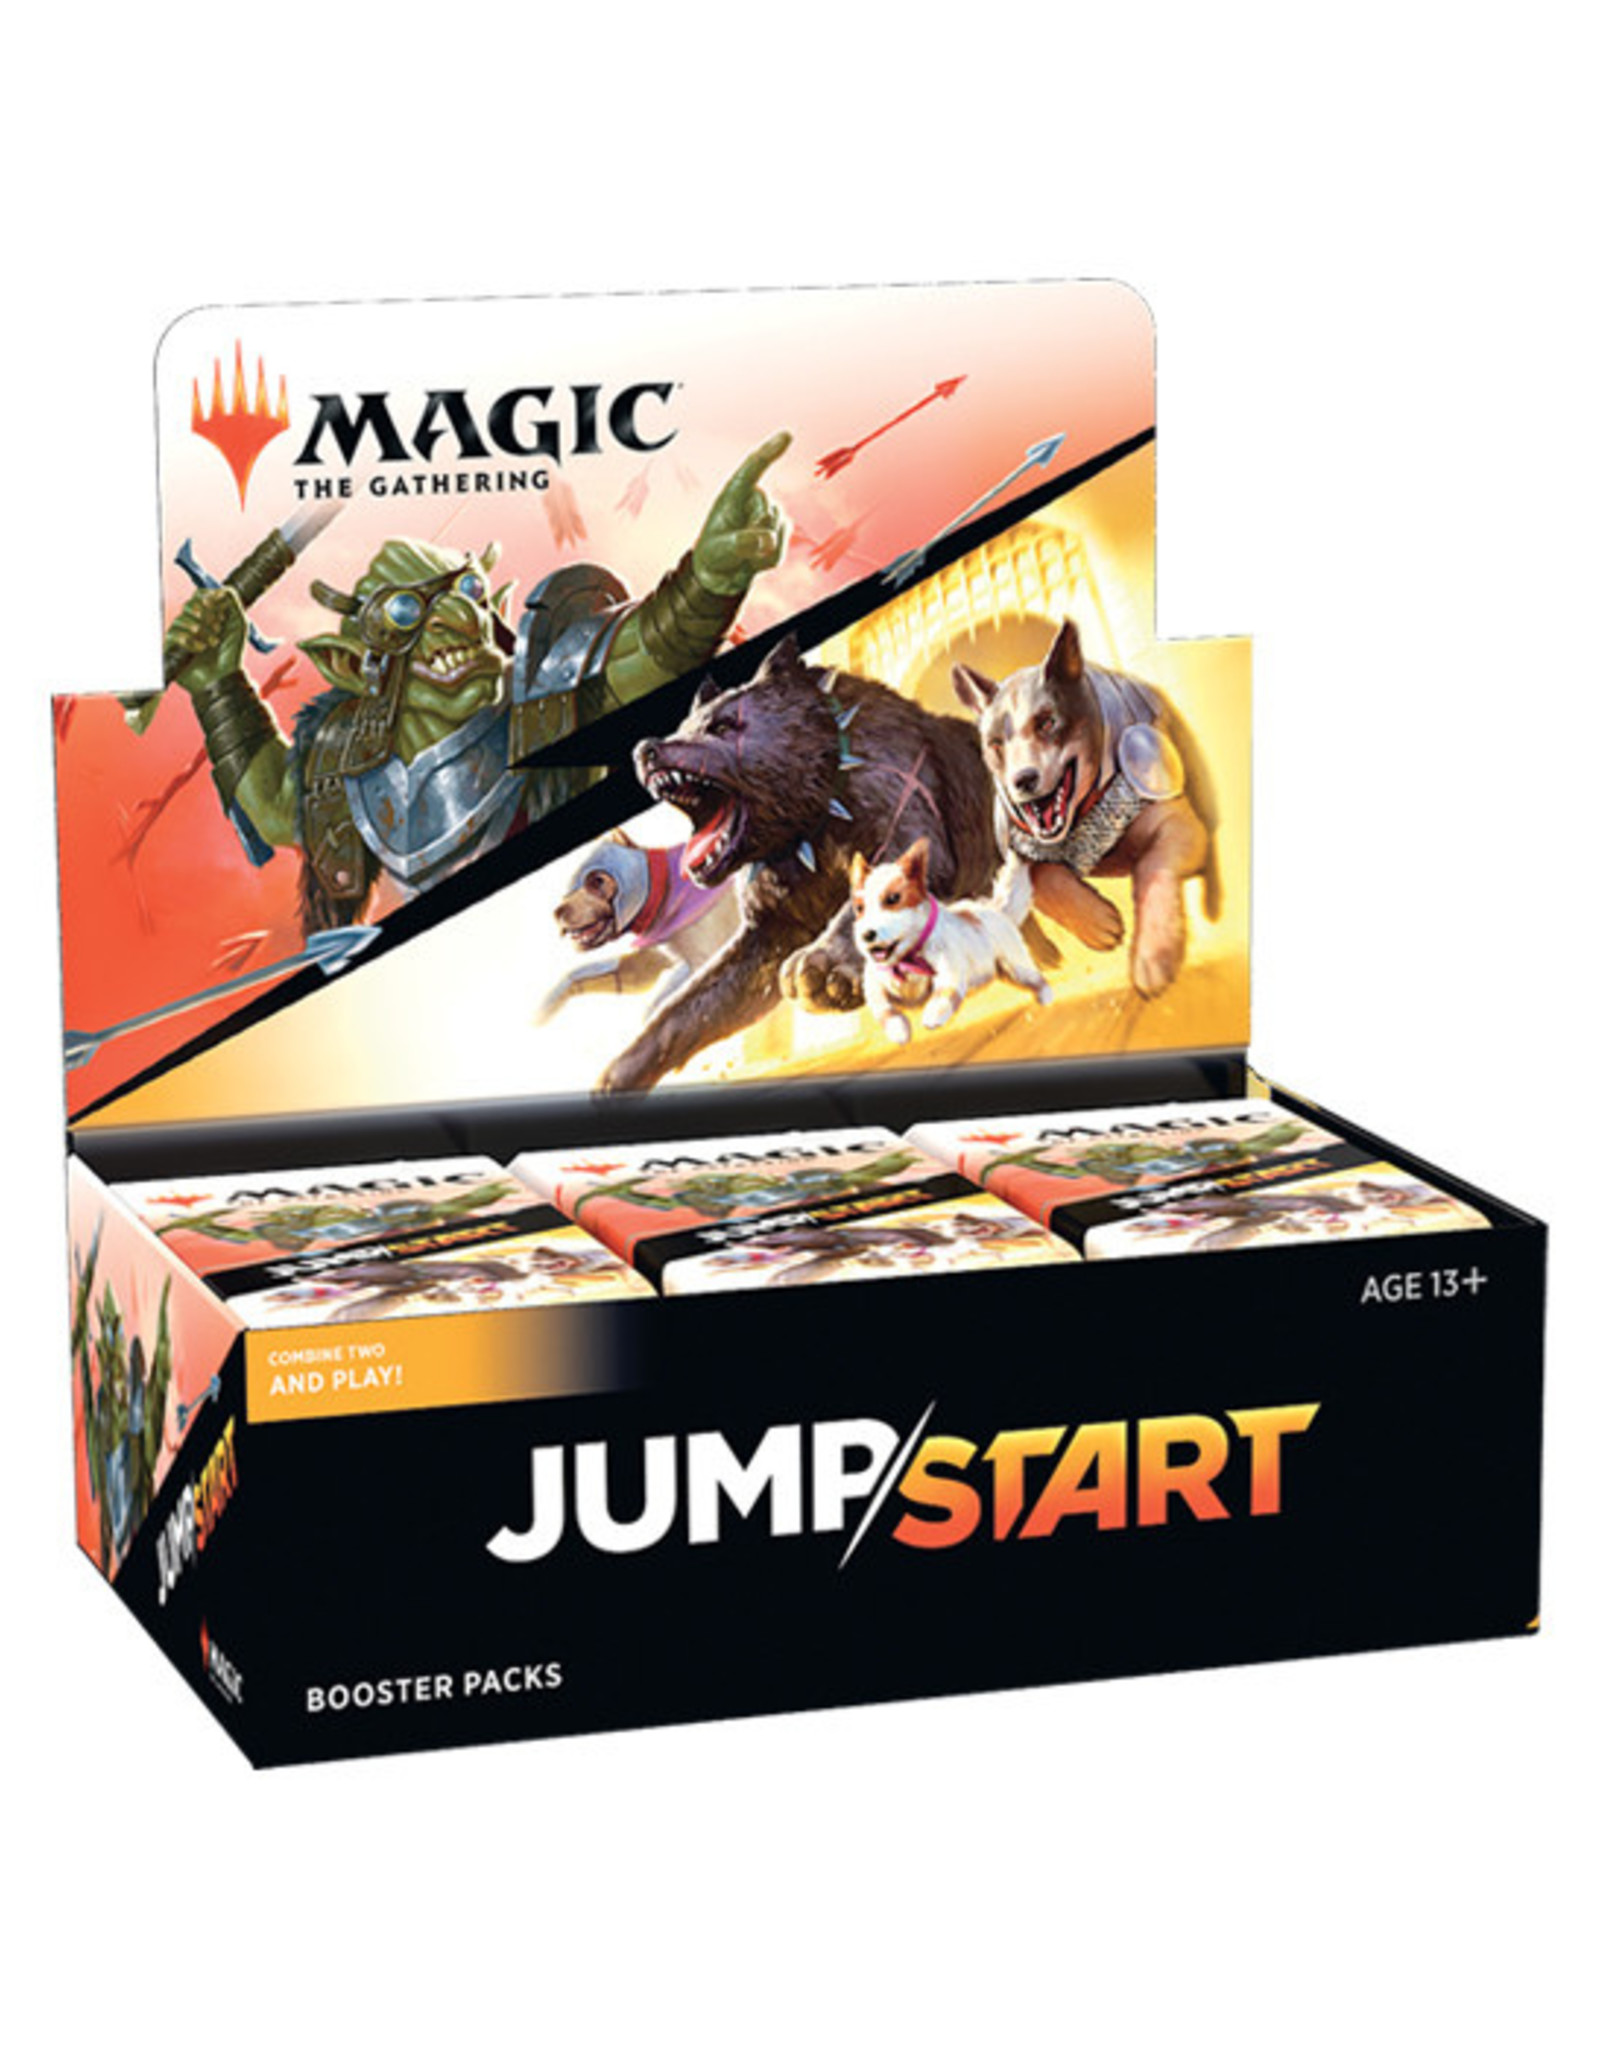 Magic: The Gathering Magic: The Gathering - Jumpstart - Booster Box